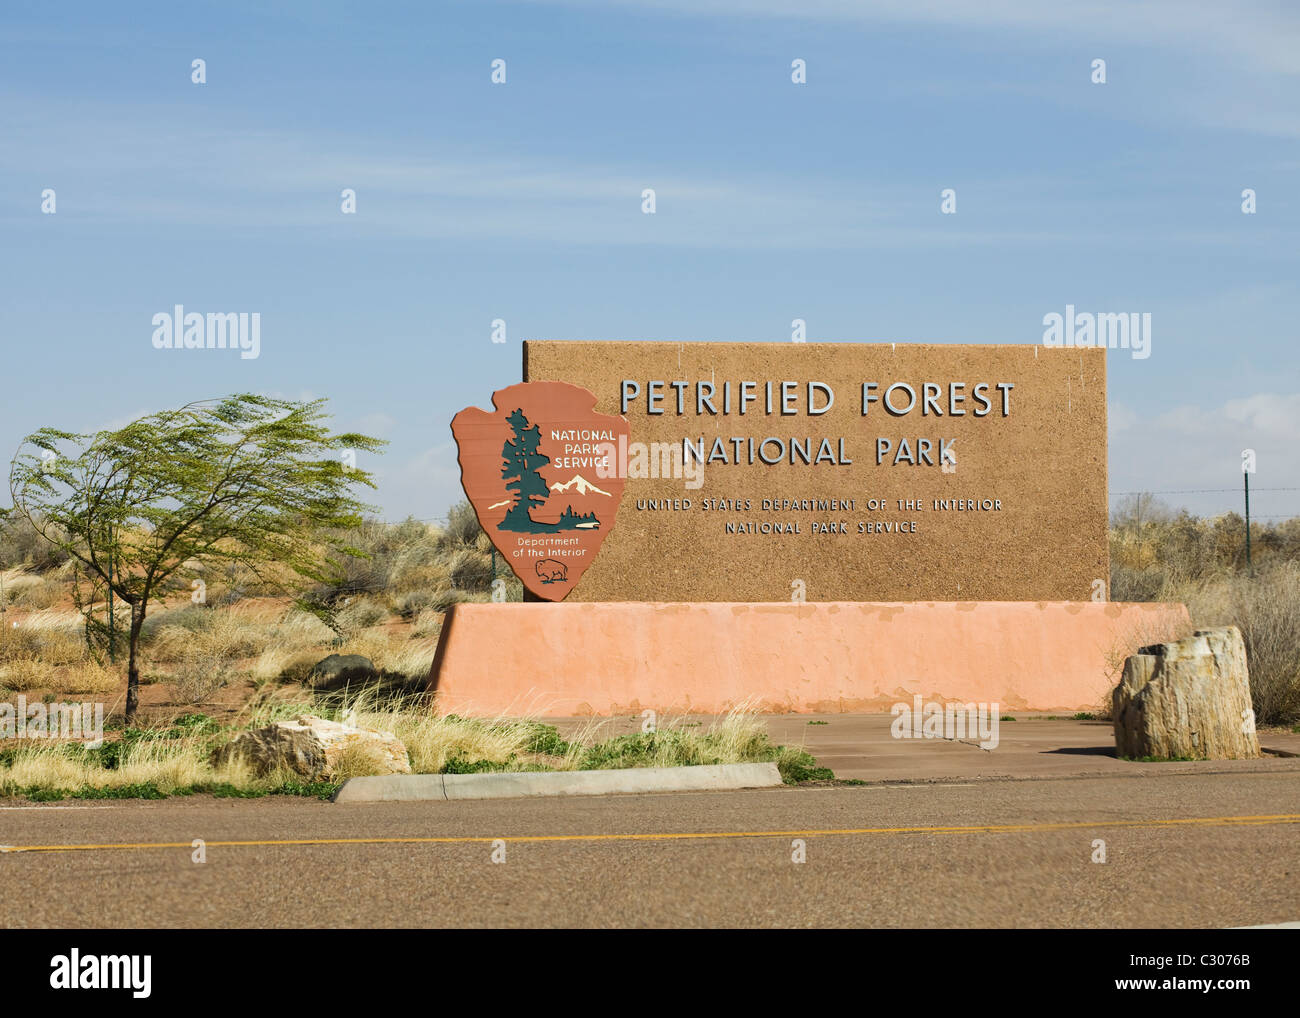 Petrified Forest entrance marker - Stock Image